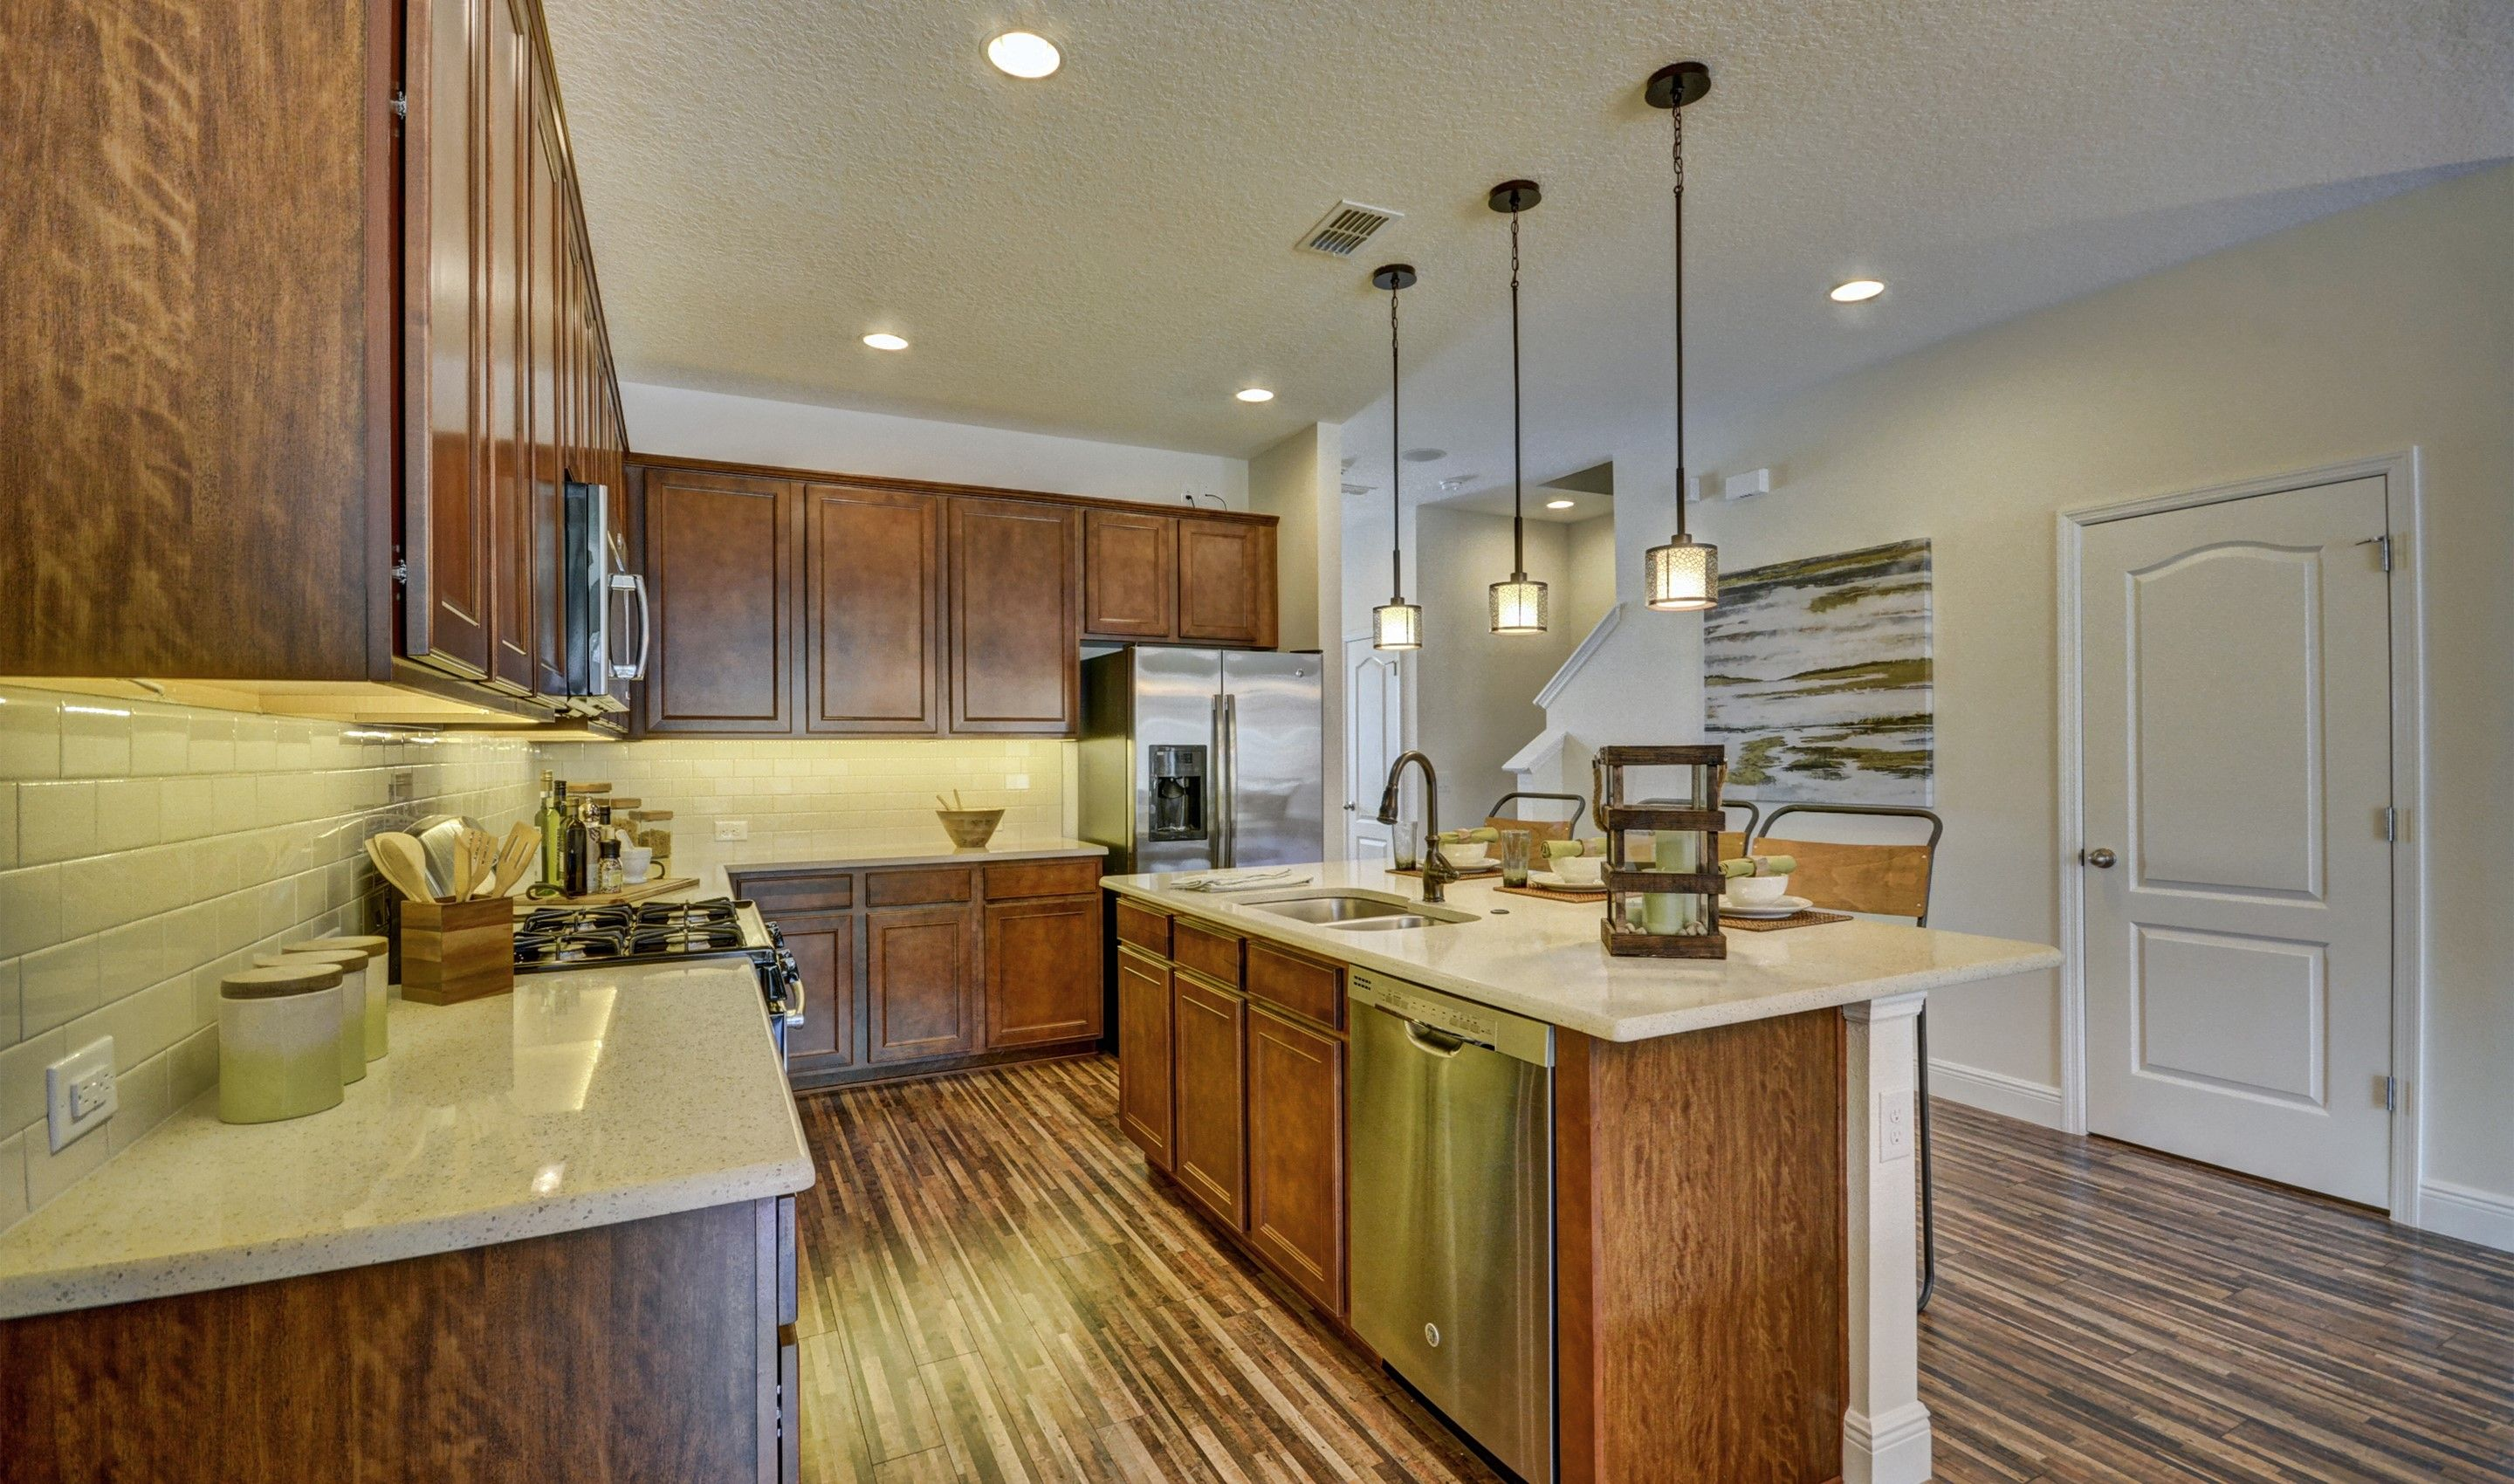 Kitchen-in-Rio Blanco-at-Winding Bay Preserve-in-Winter Garden